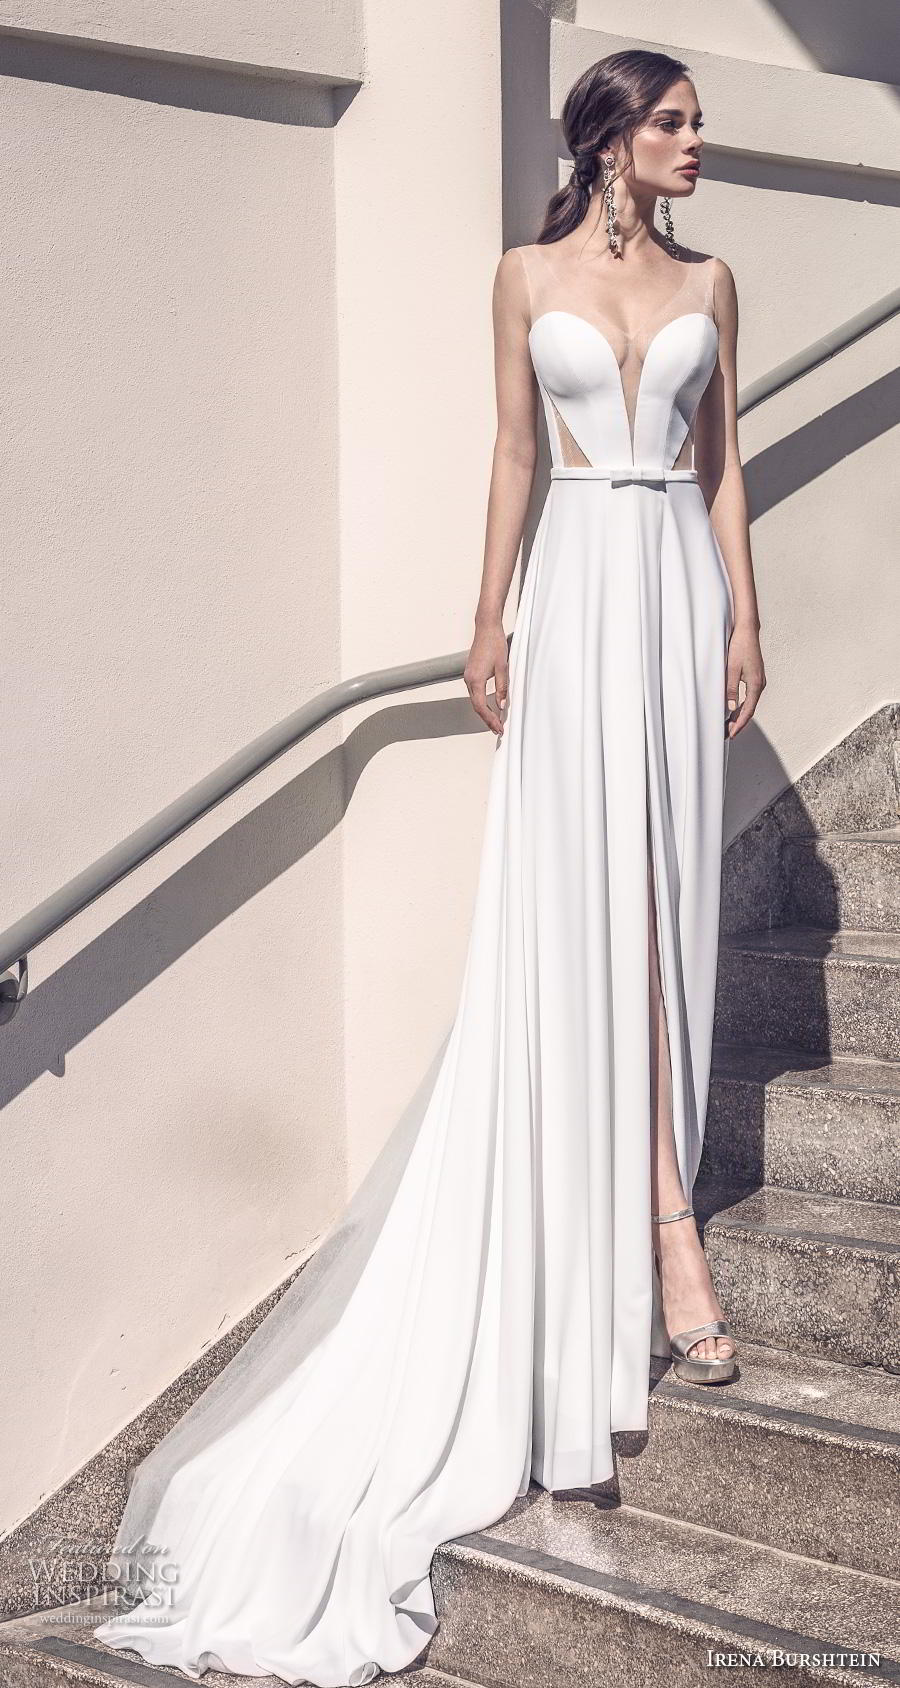 irena burshtein 2020 bridal sleeveless deep sweetheart neckline simple minimalist elegant slit skirt sheath wedding dress backless v back chapel train (7) mv